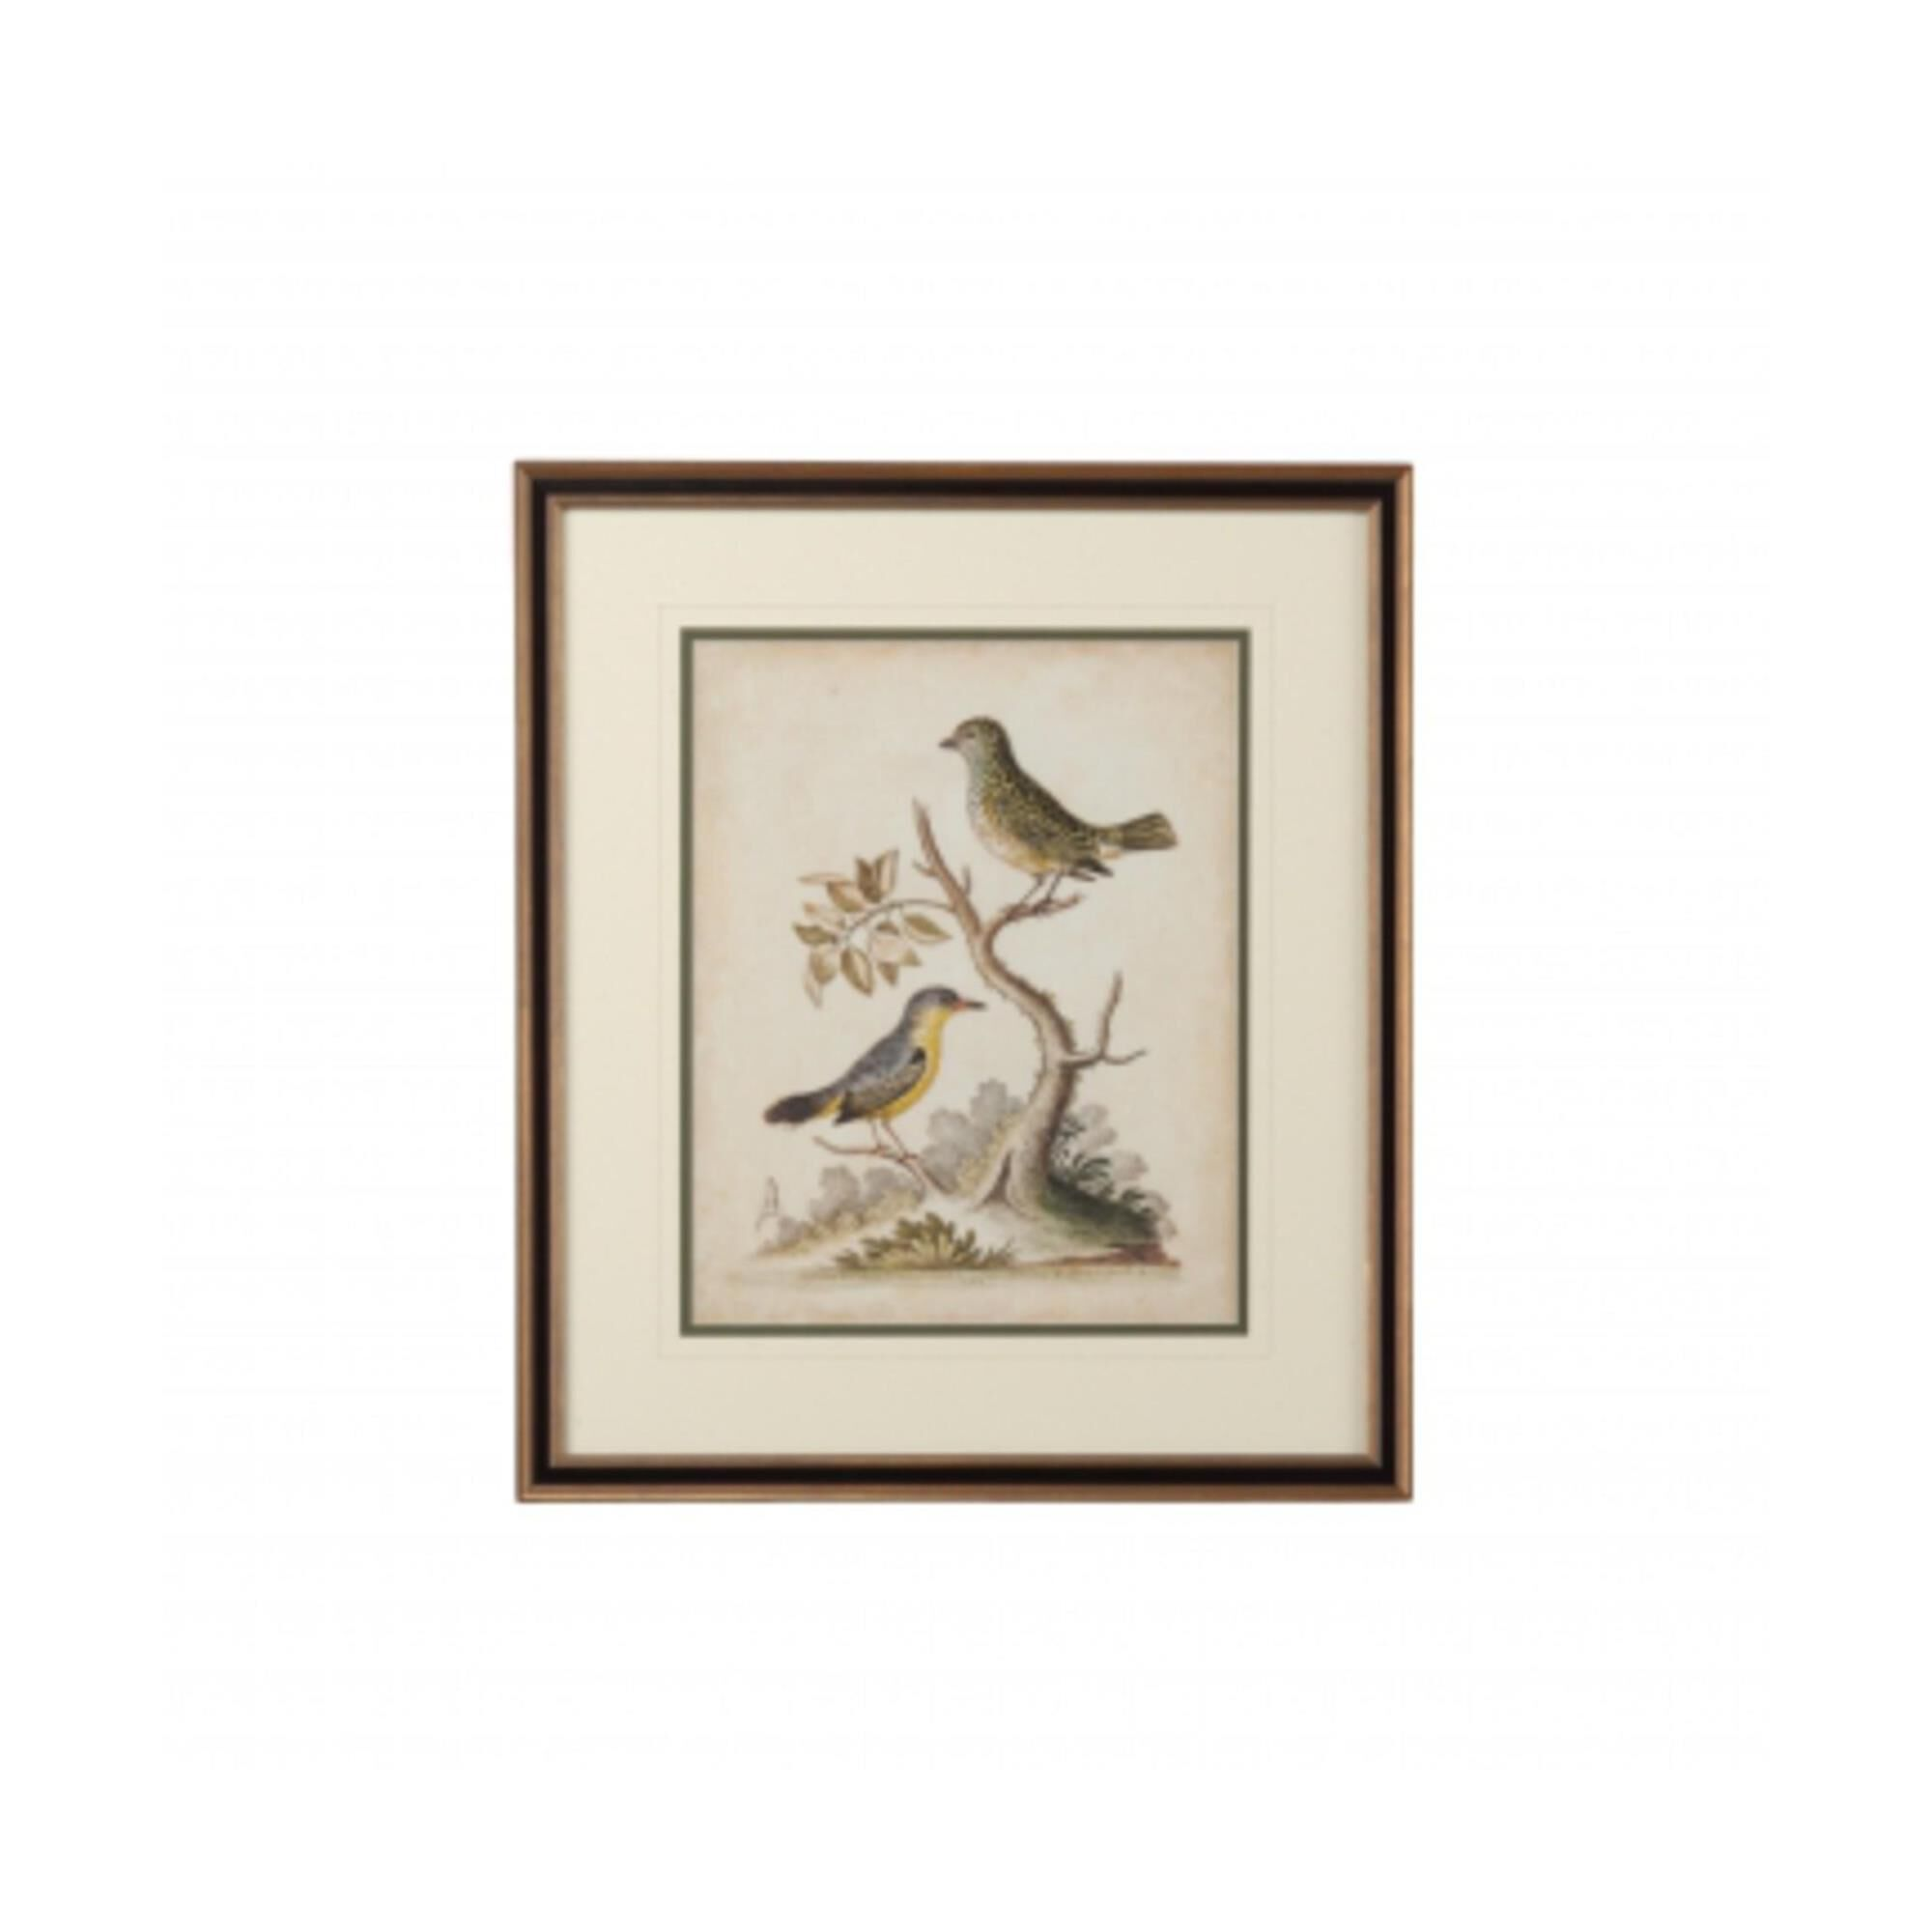 Chelsea House EDWARDS BIRD PAIRS VII Print Edwards Bird Pairs Vii - 386429 (2032592) photo